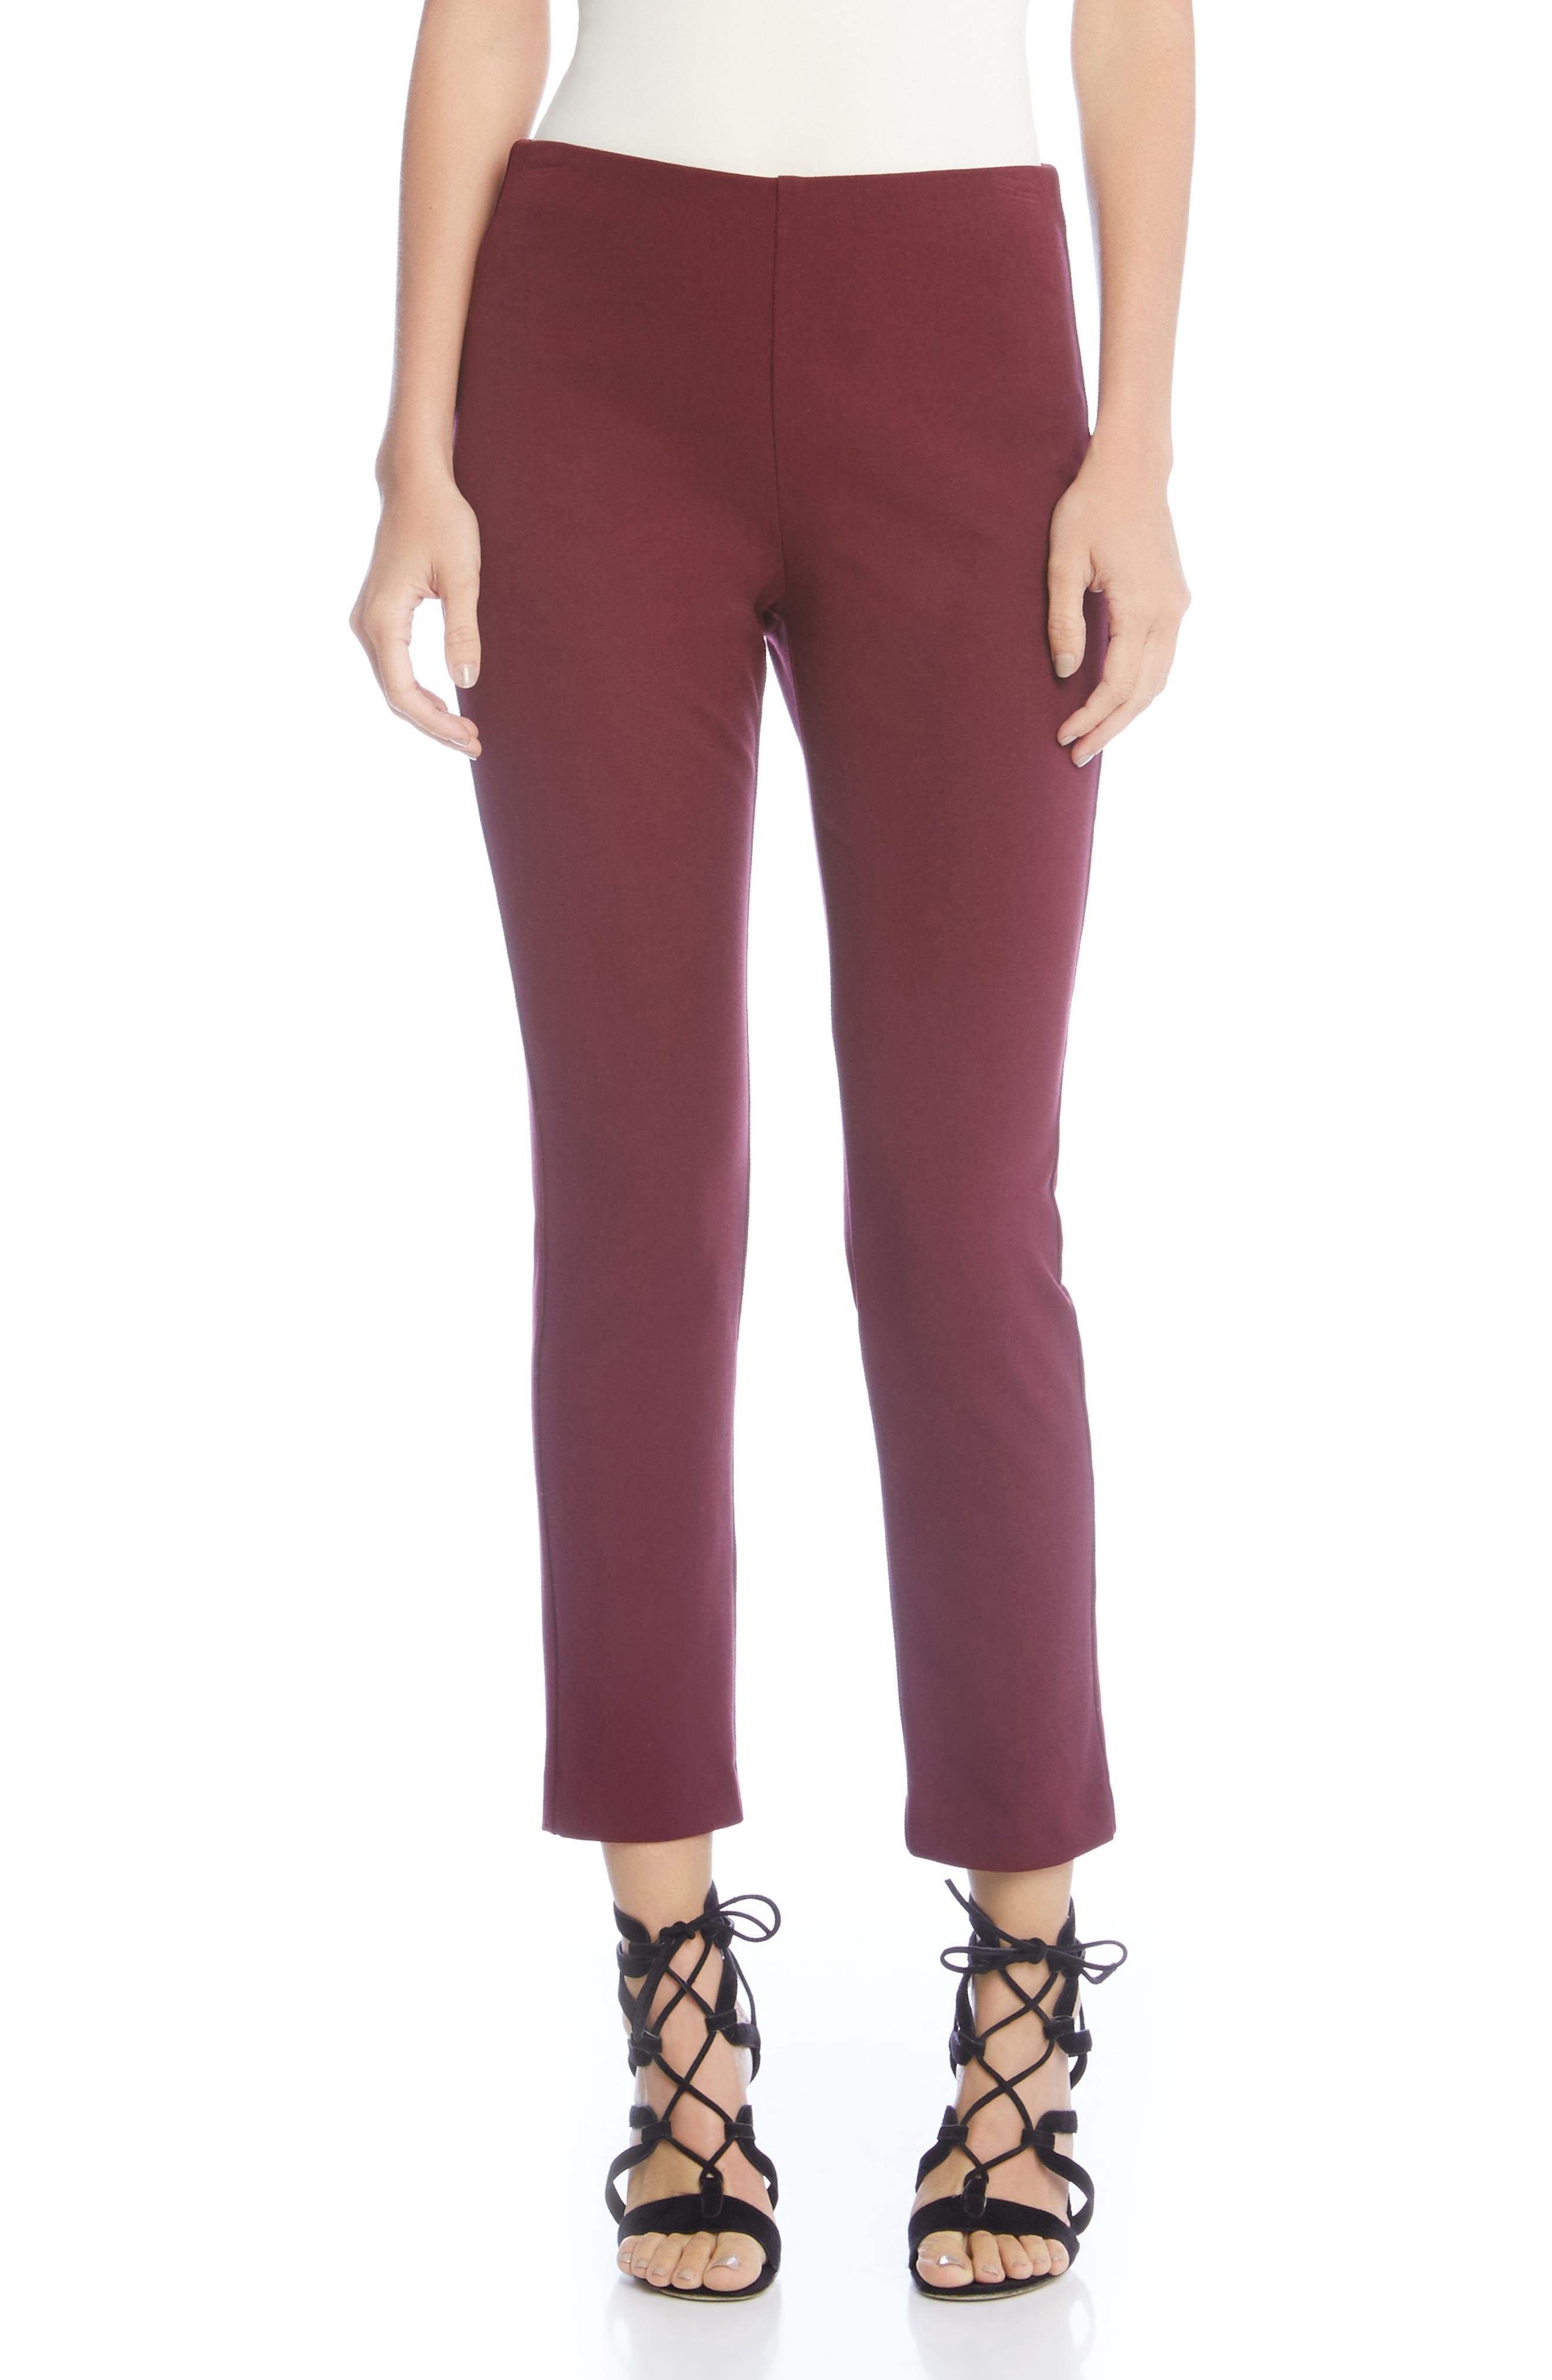 Piper Pants,                         Main,                         color, Wine